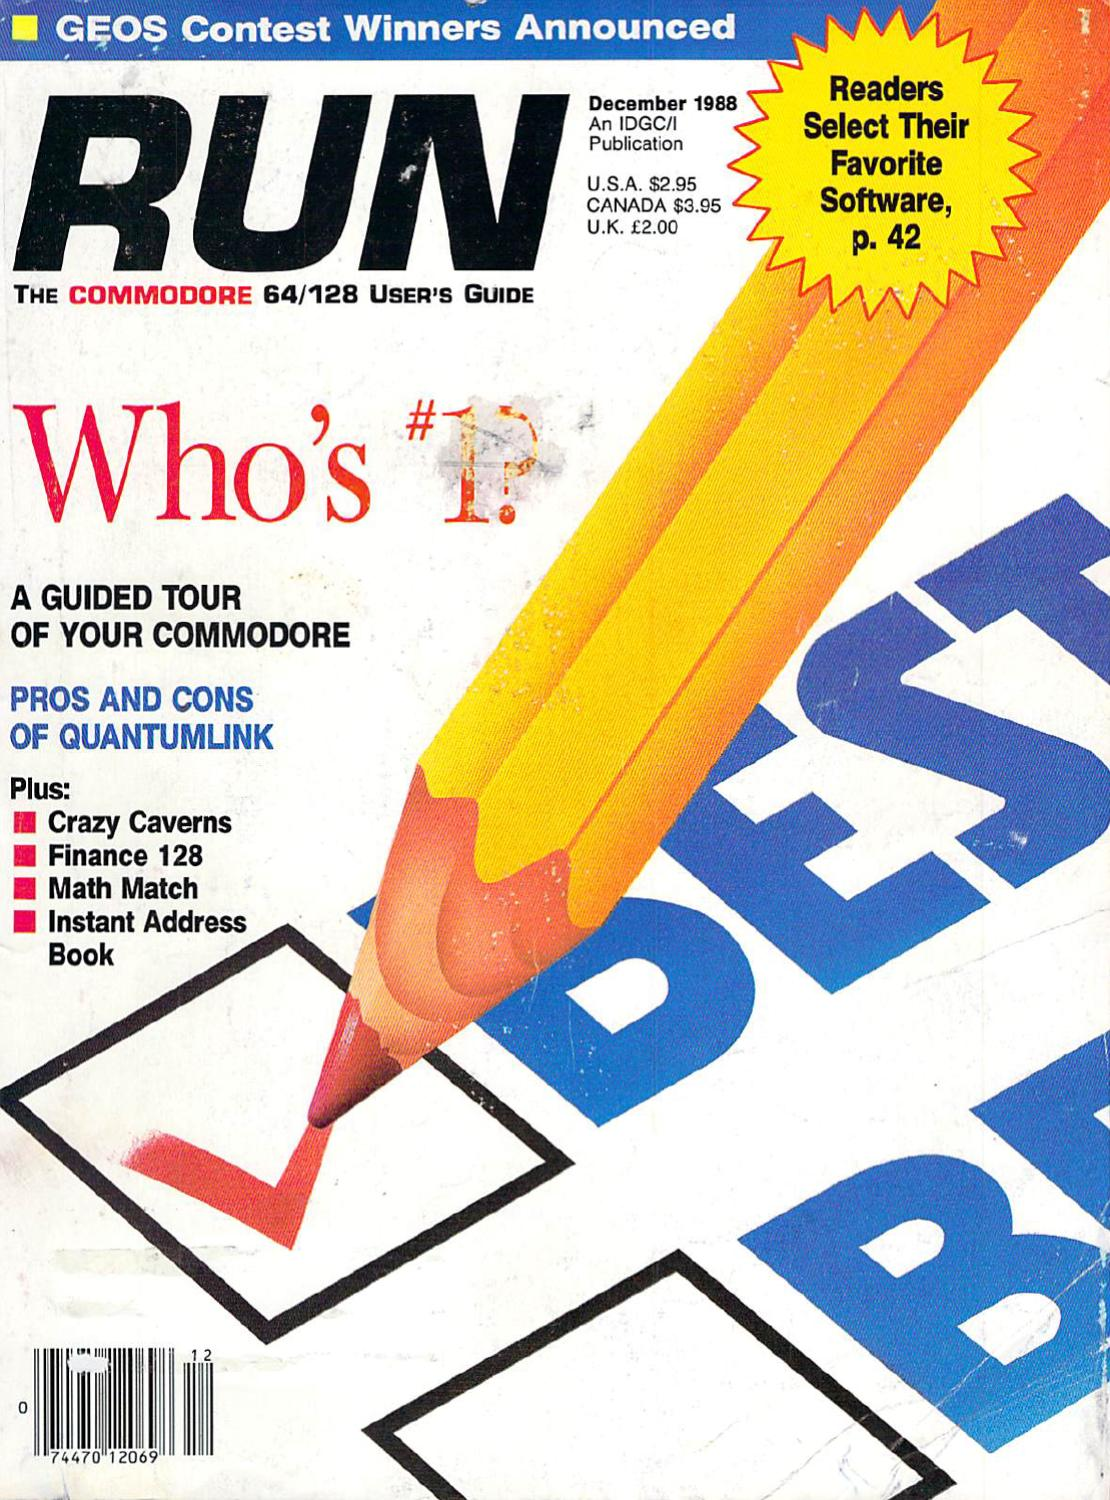 nike air max nouvelles - Run_Issue_60_1988_Dec by Zetmoon - issuu